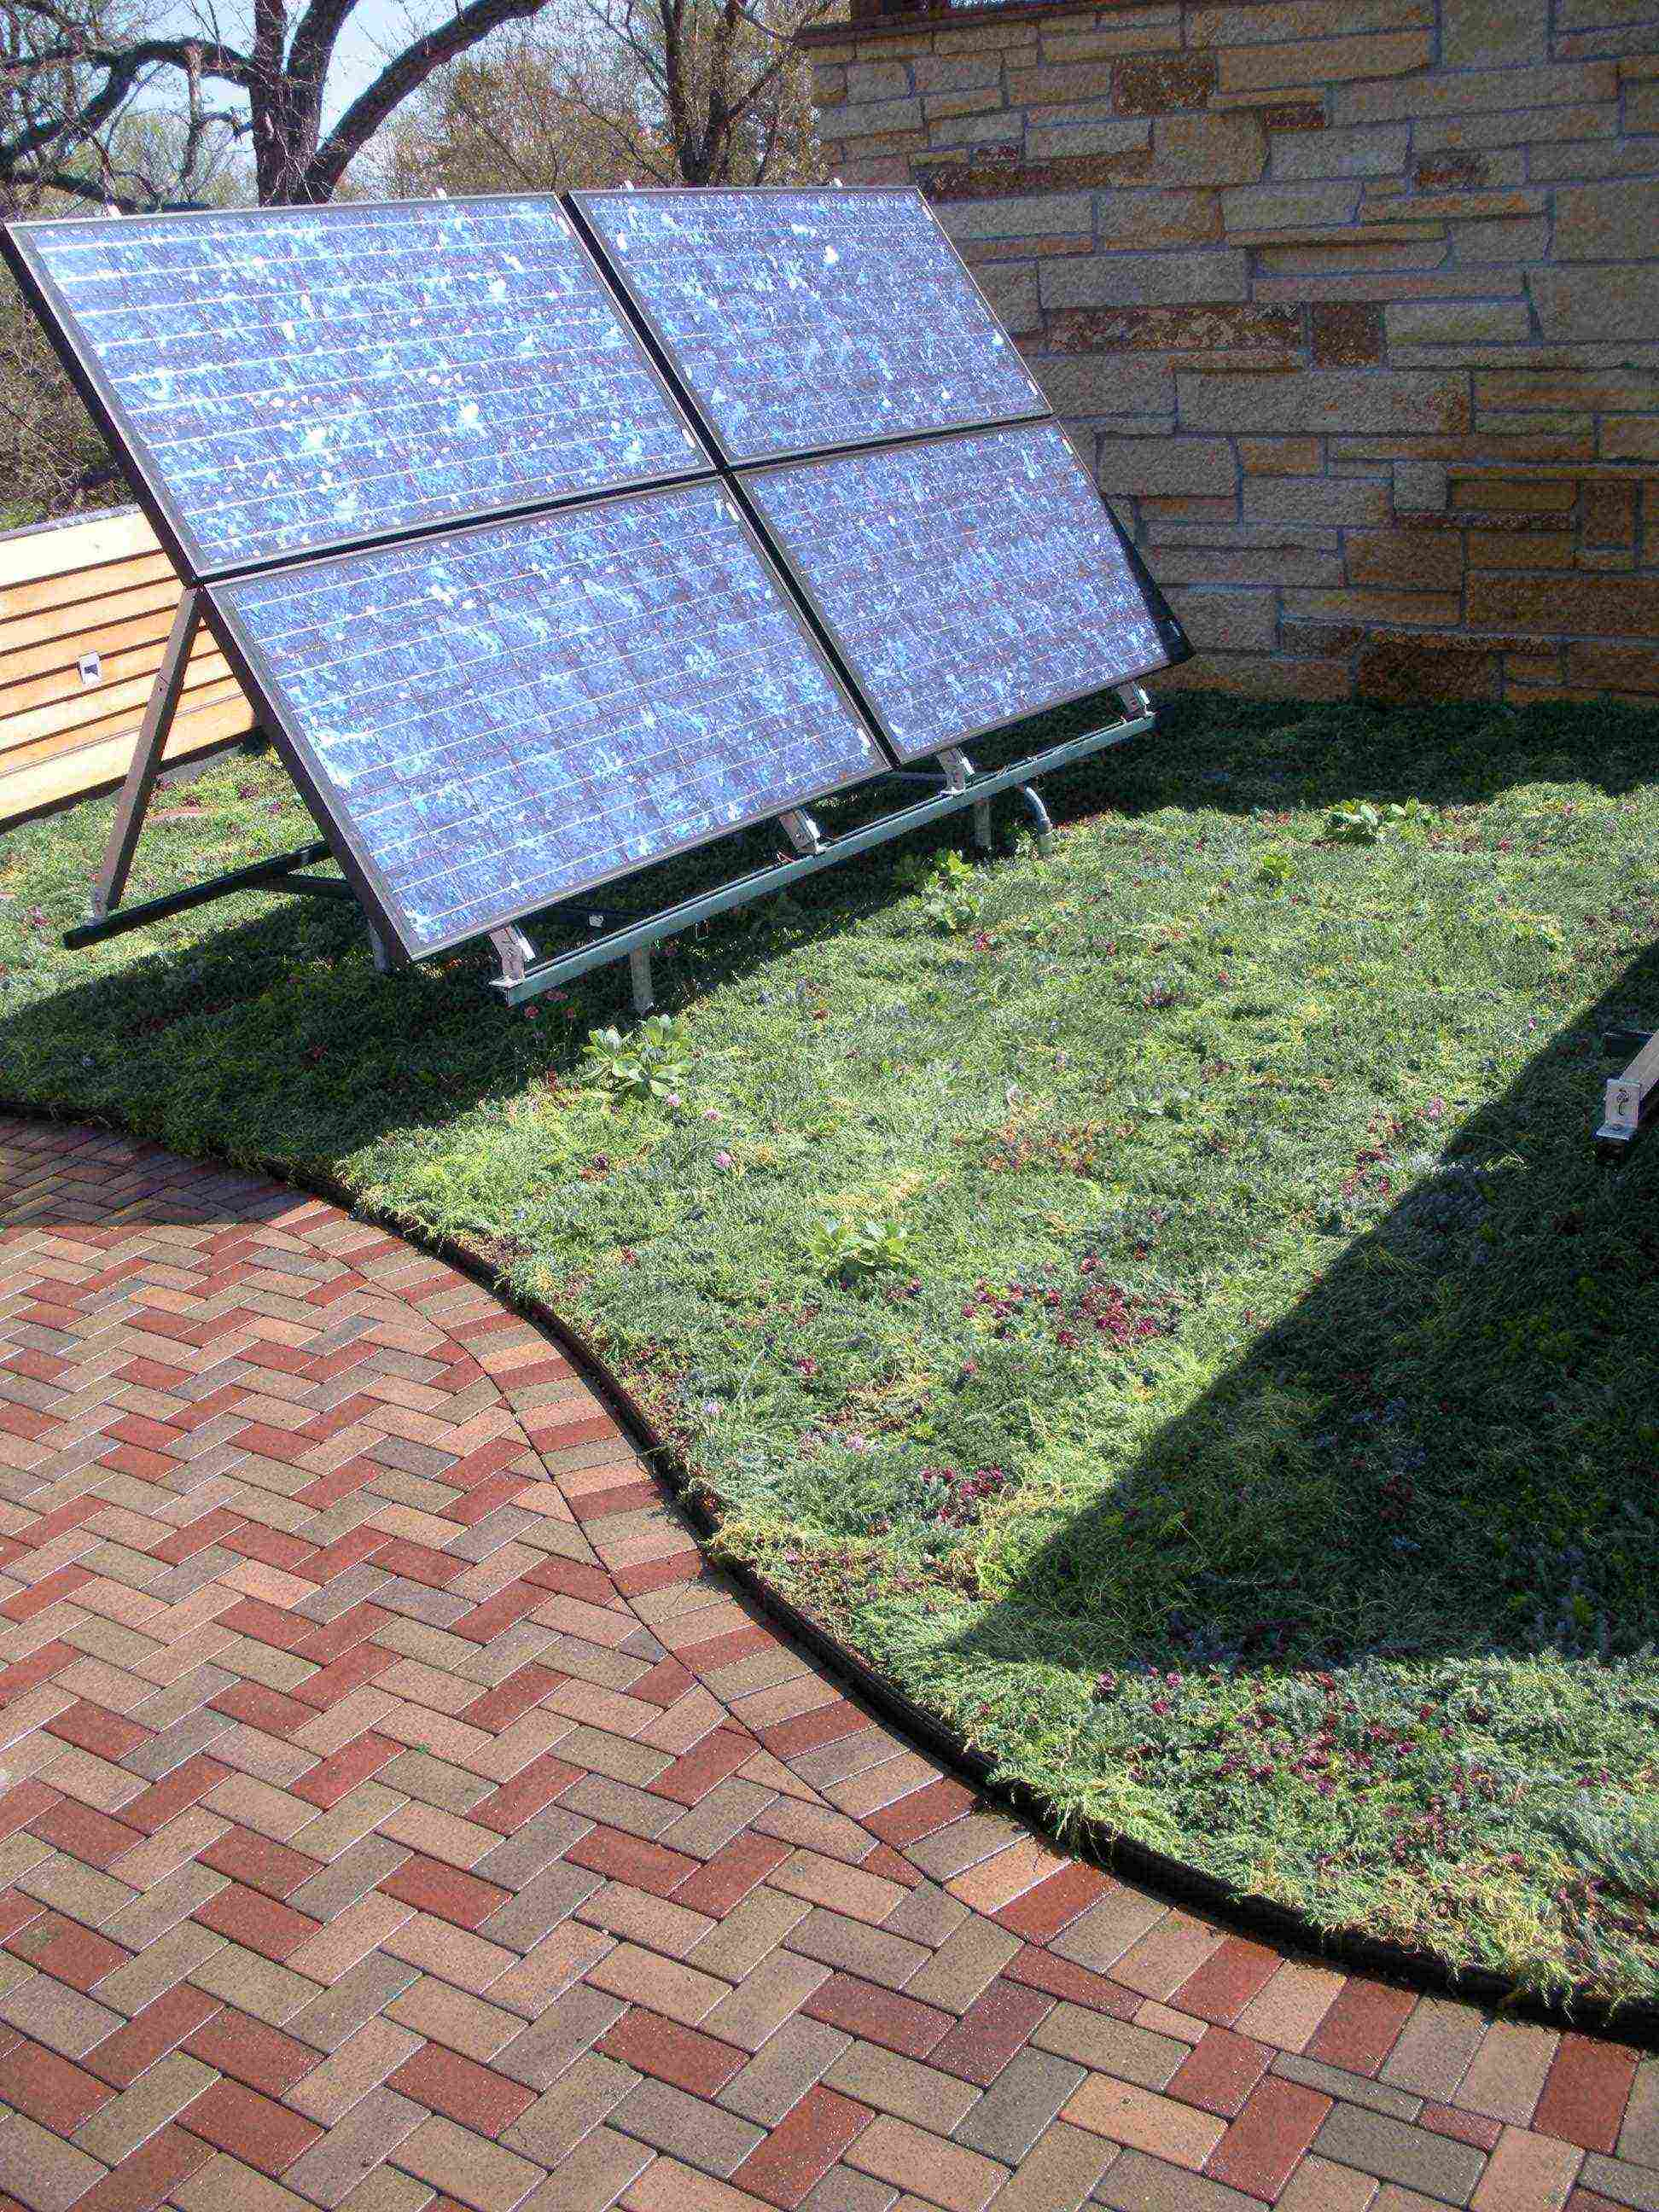 residential green roof system installed near owner's solar panels